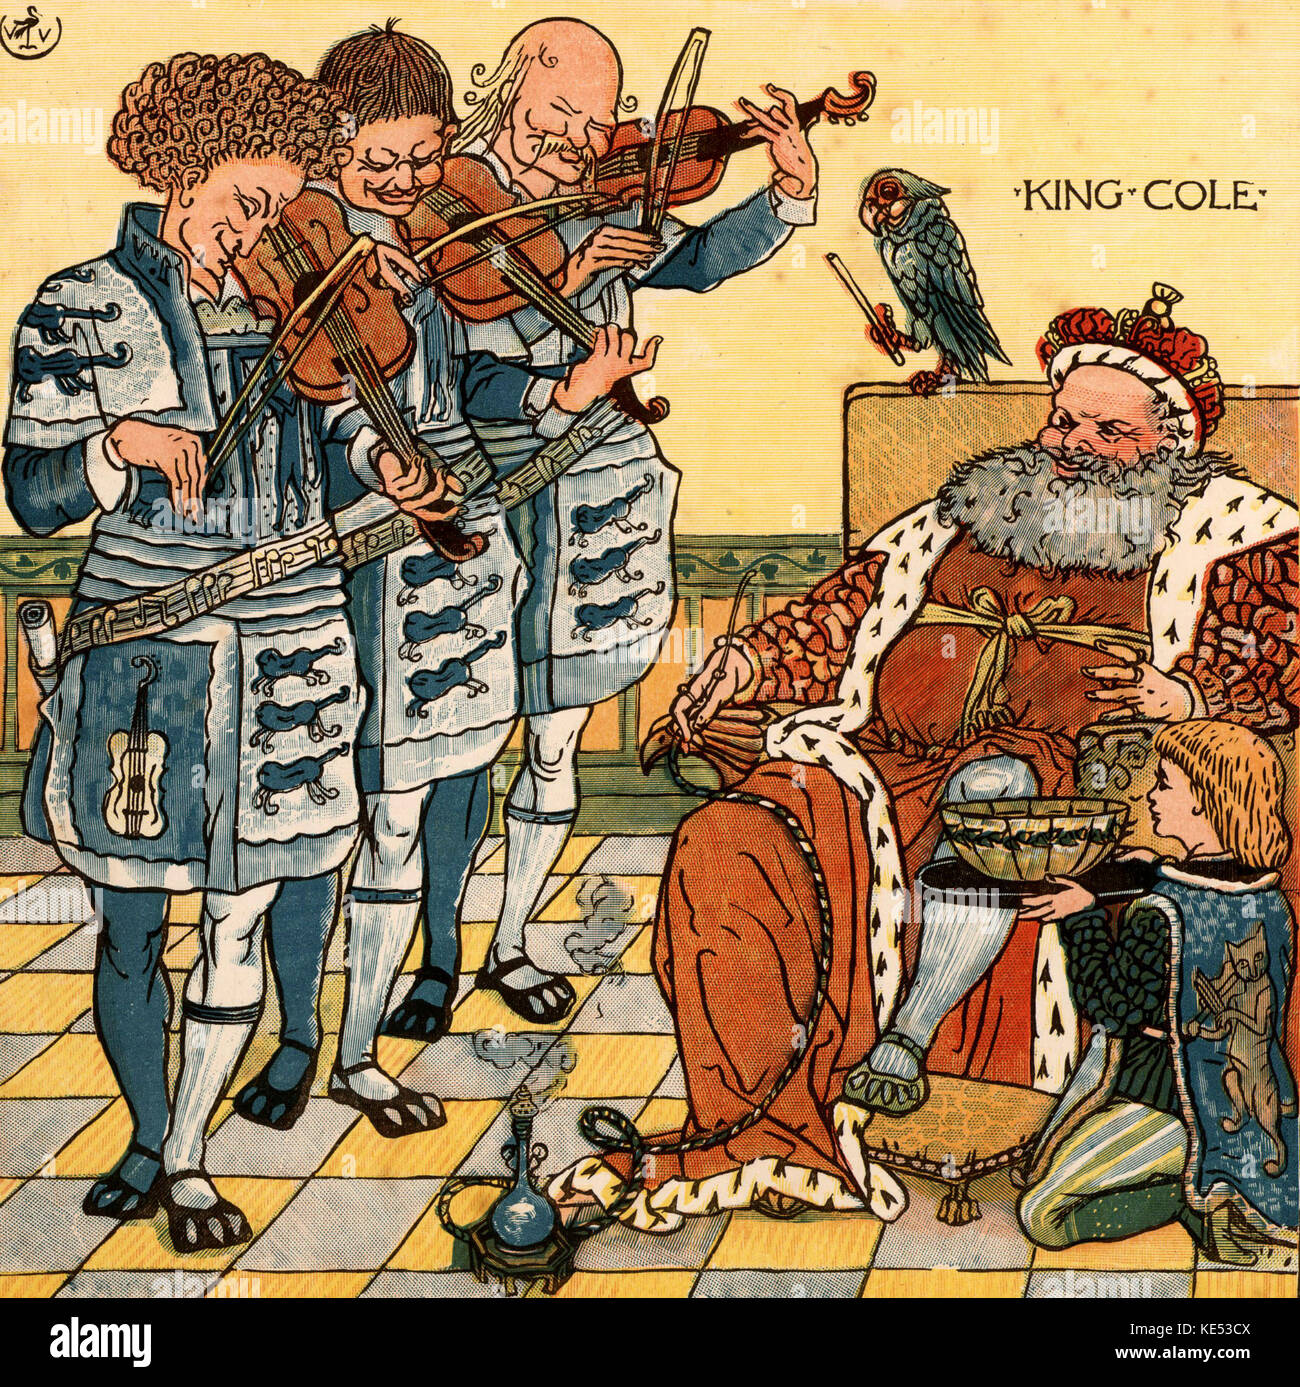 Old King Cole, nursery rhyme illustration (1877) by Walter Crane. English artist of Arts and Crafts movement, 15 - Stock Image